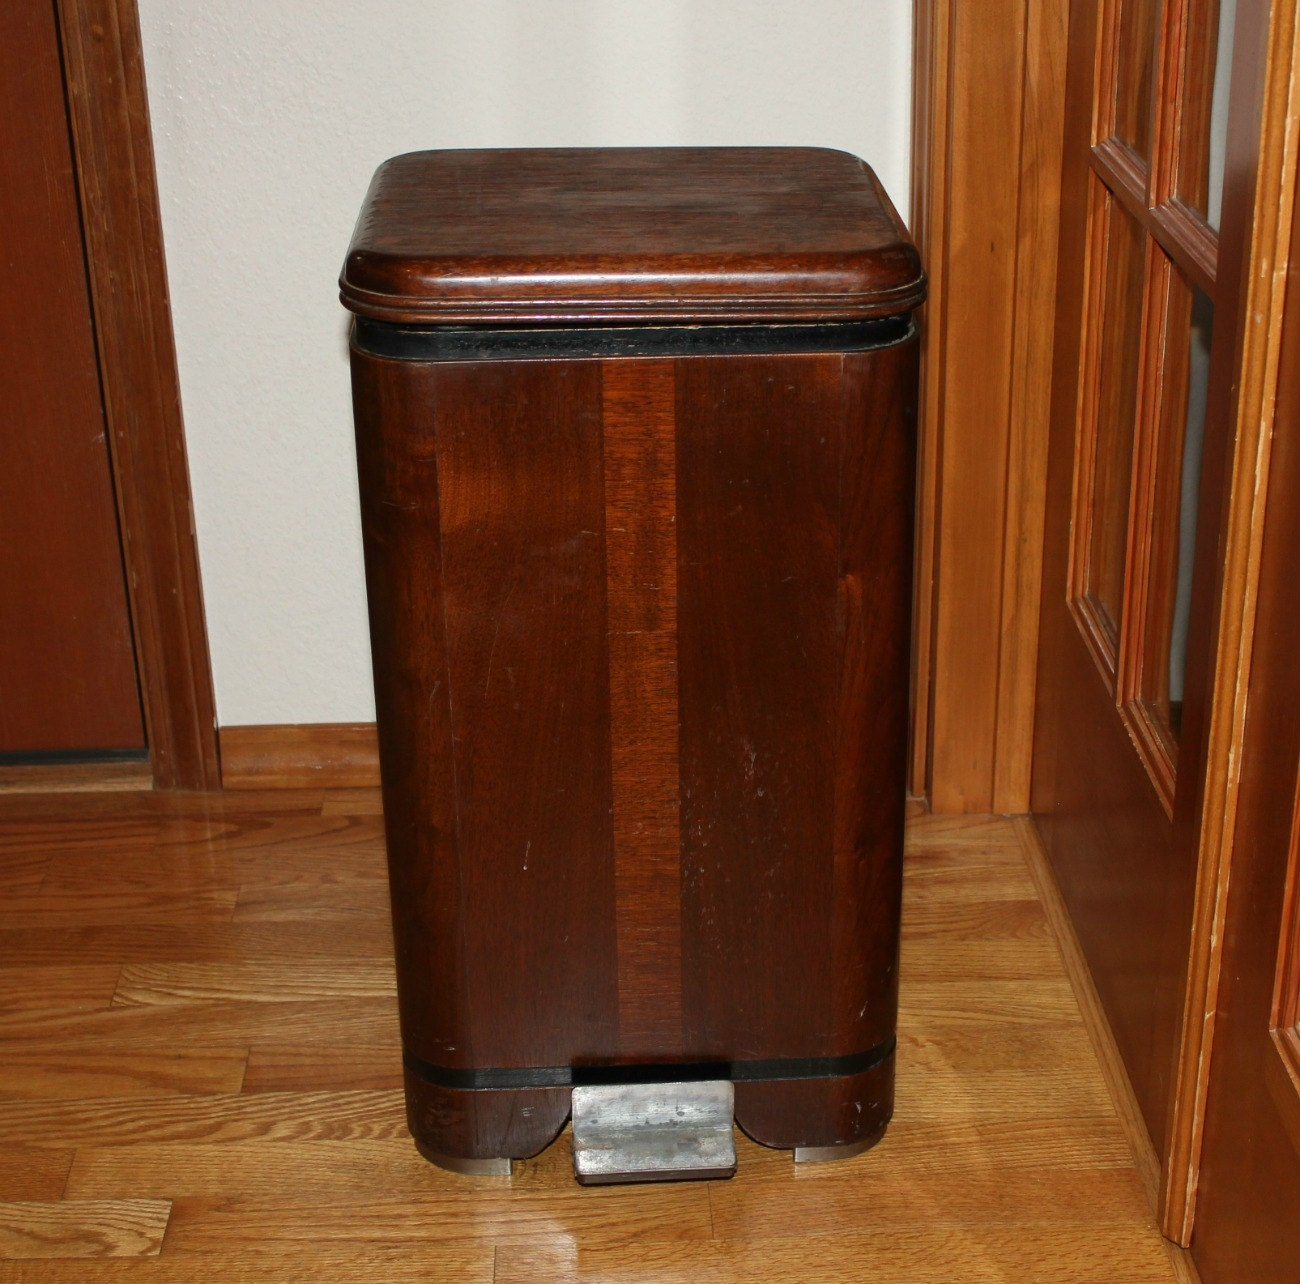 Waterfall hamilton trash can garbage bin vintage wood step lid - Wooden kitchen trash can with lid ...